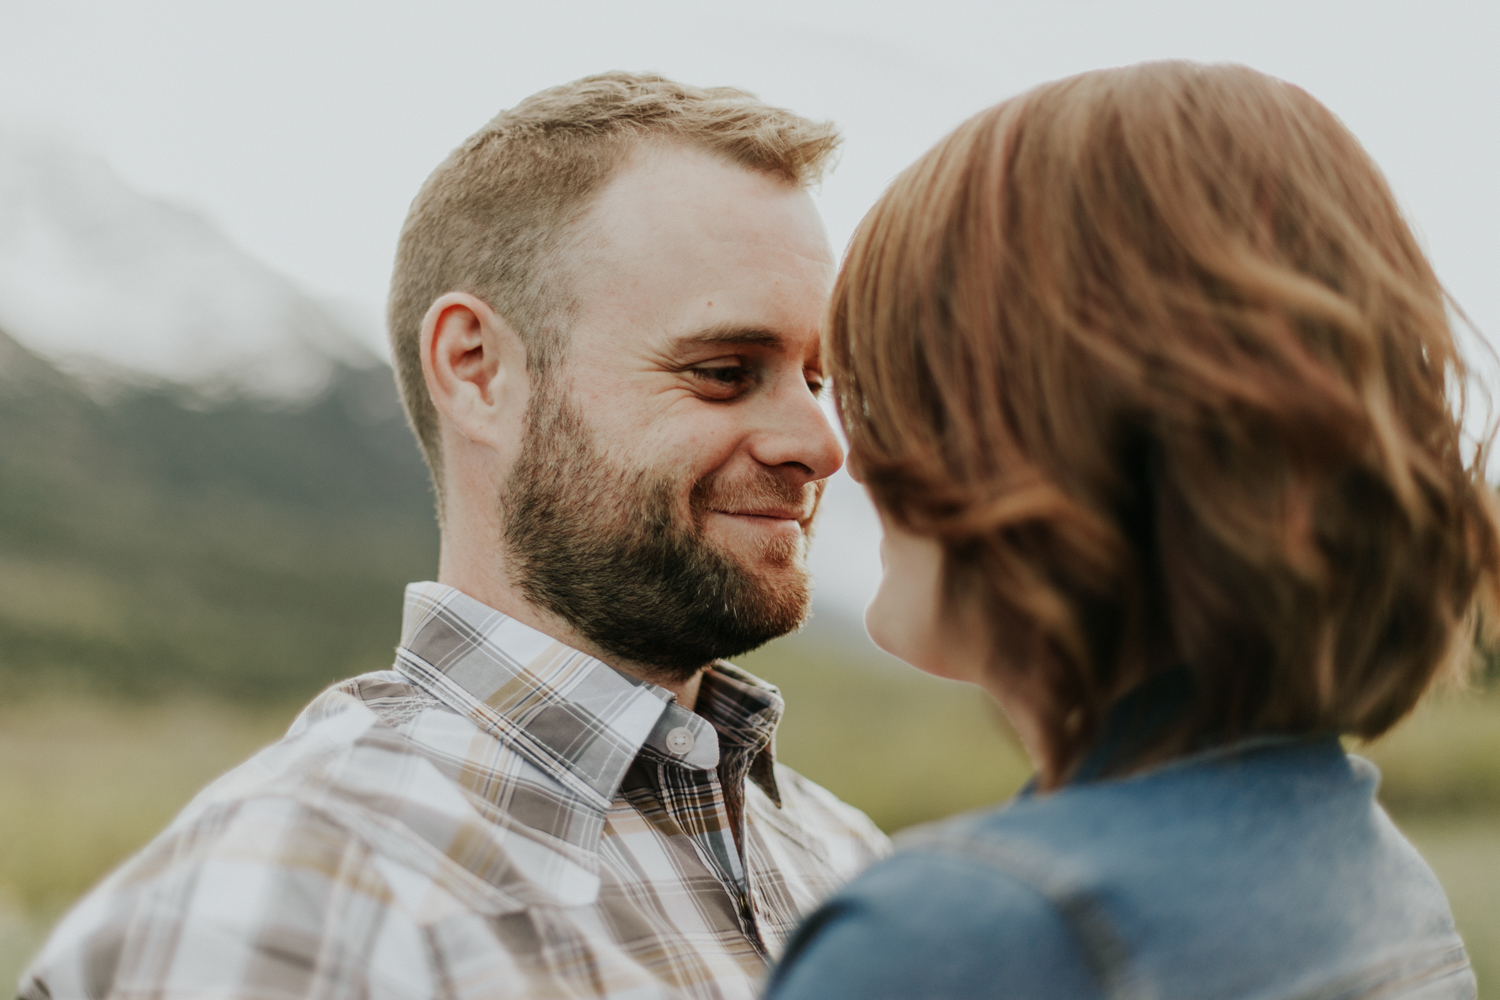 waterton-photographer-love-and-be-loved-photograph-mountain-engagement-luc-megan-picture-iamge-photo-21.jpg